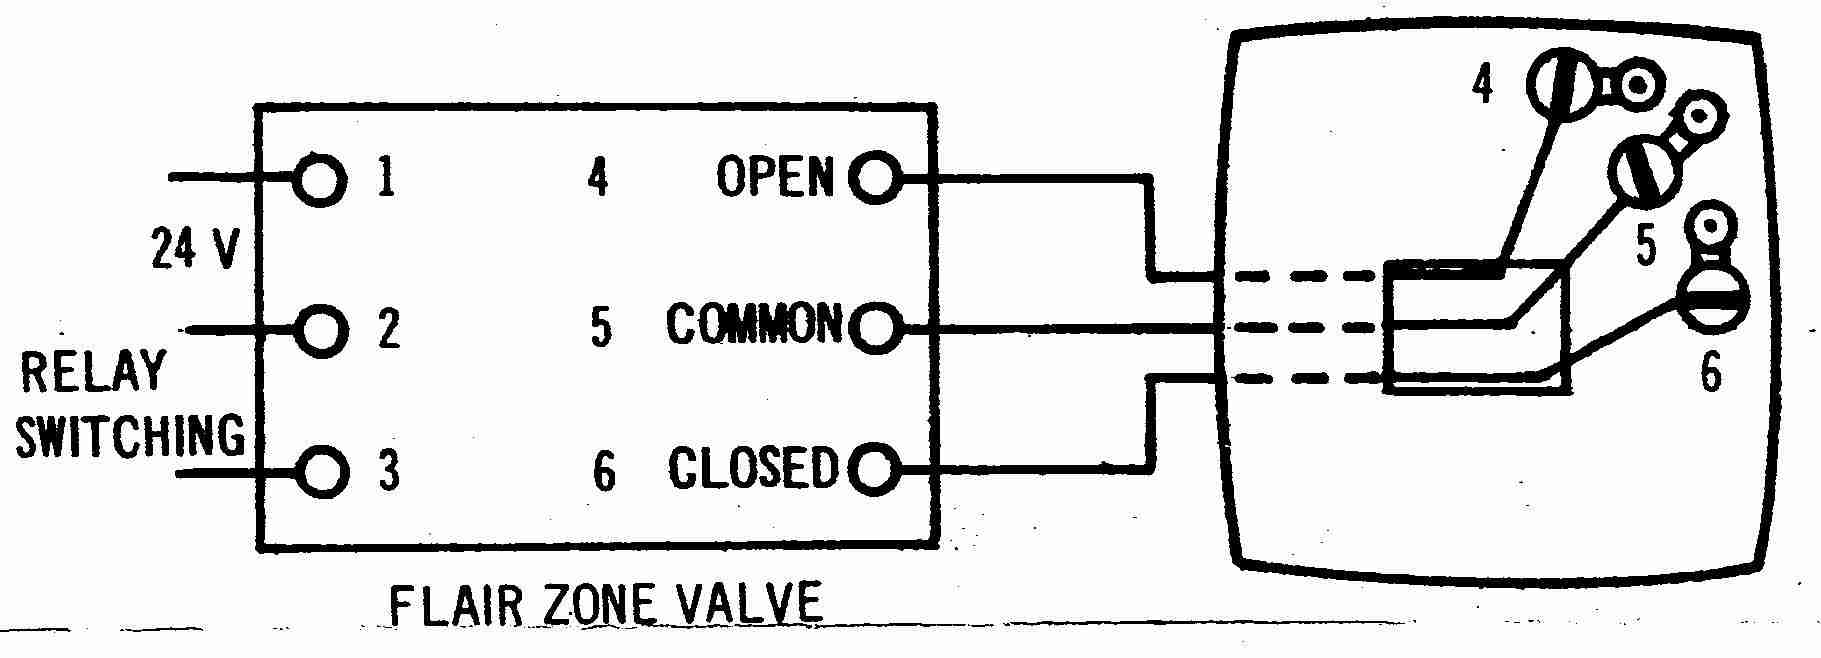 Flair3w_001_DJFc2 zone valve wiring installation & instructions guide to heating imit boiler thermostat wiring diagram at crackthecode.co